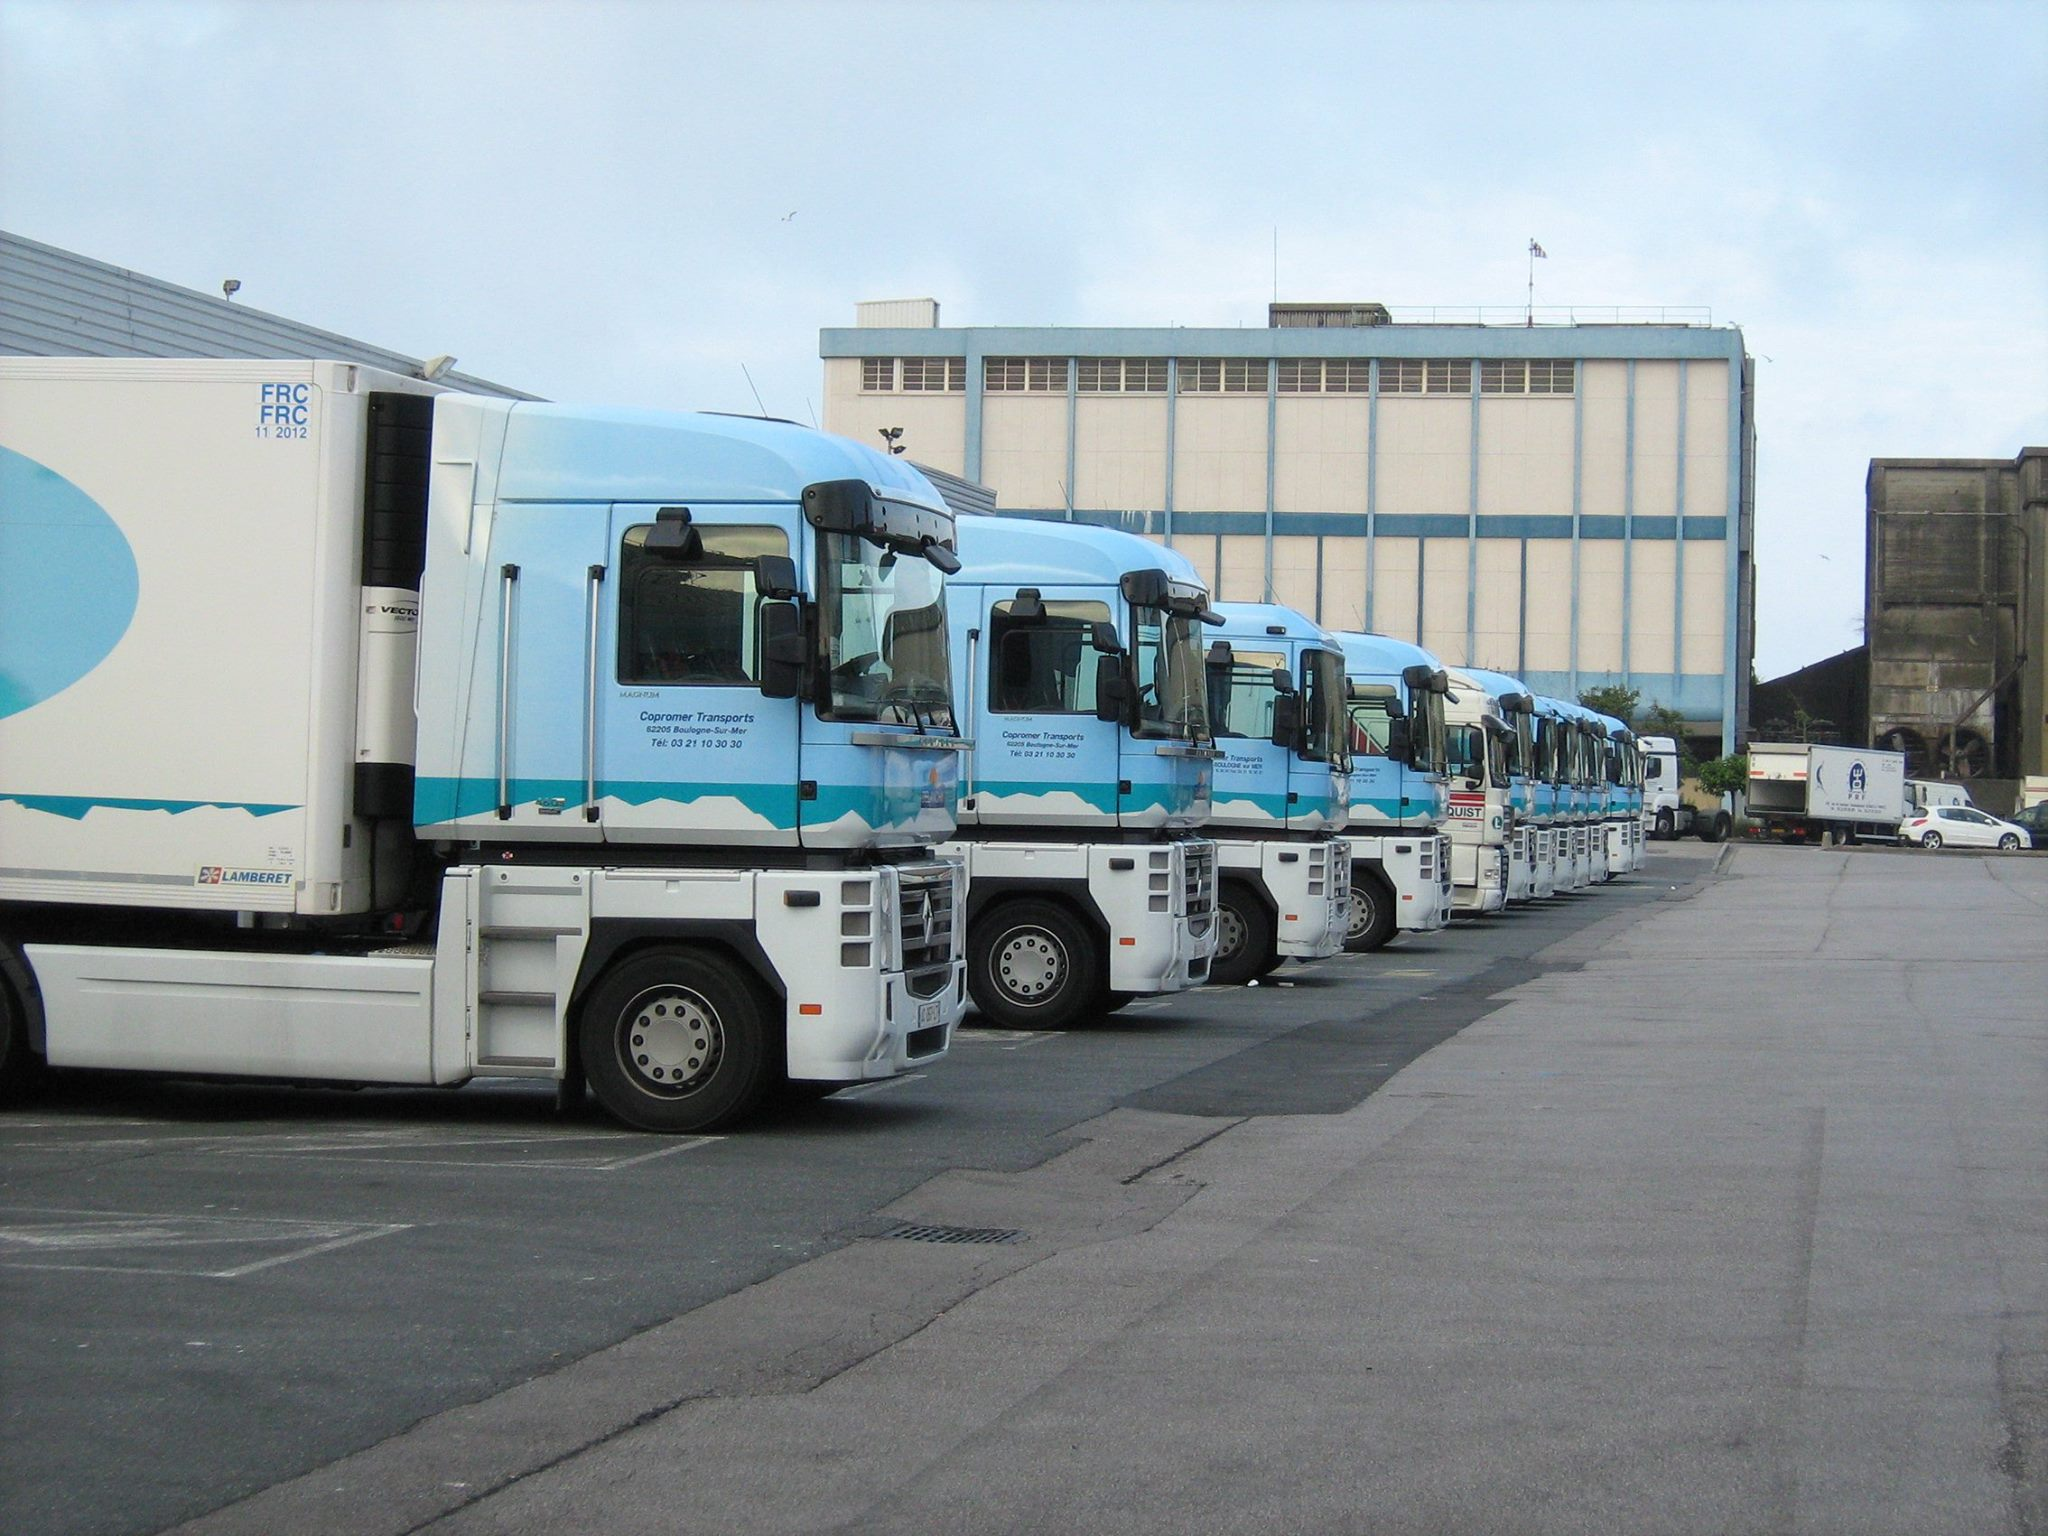 copromer-transports-boulogne-